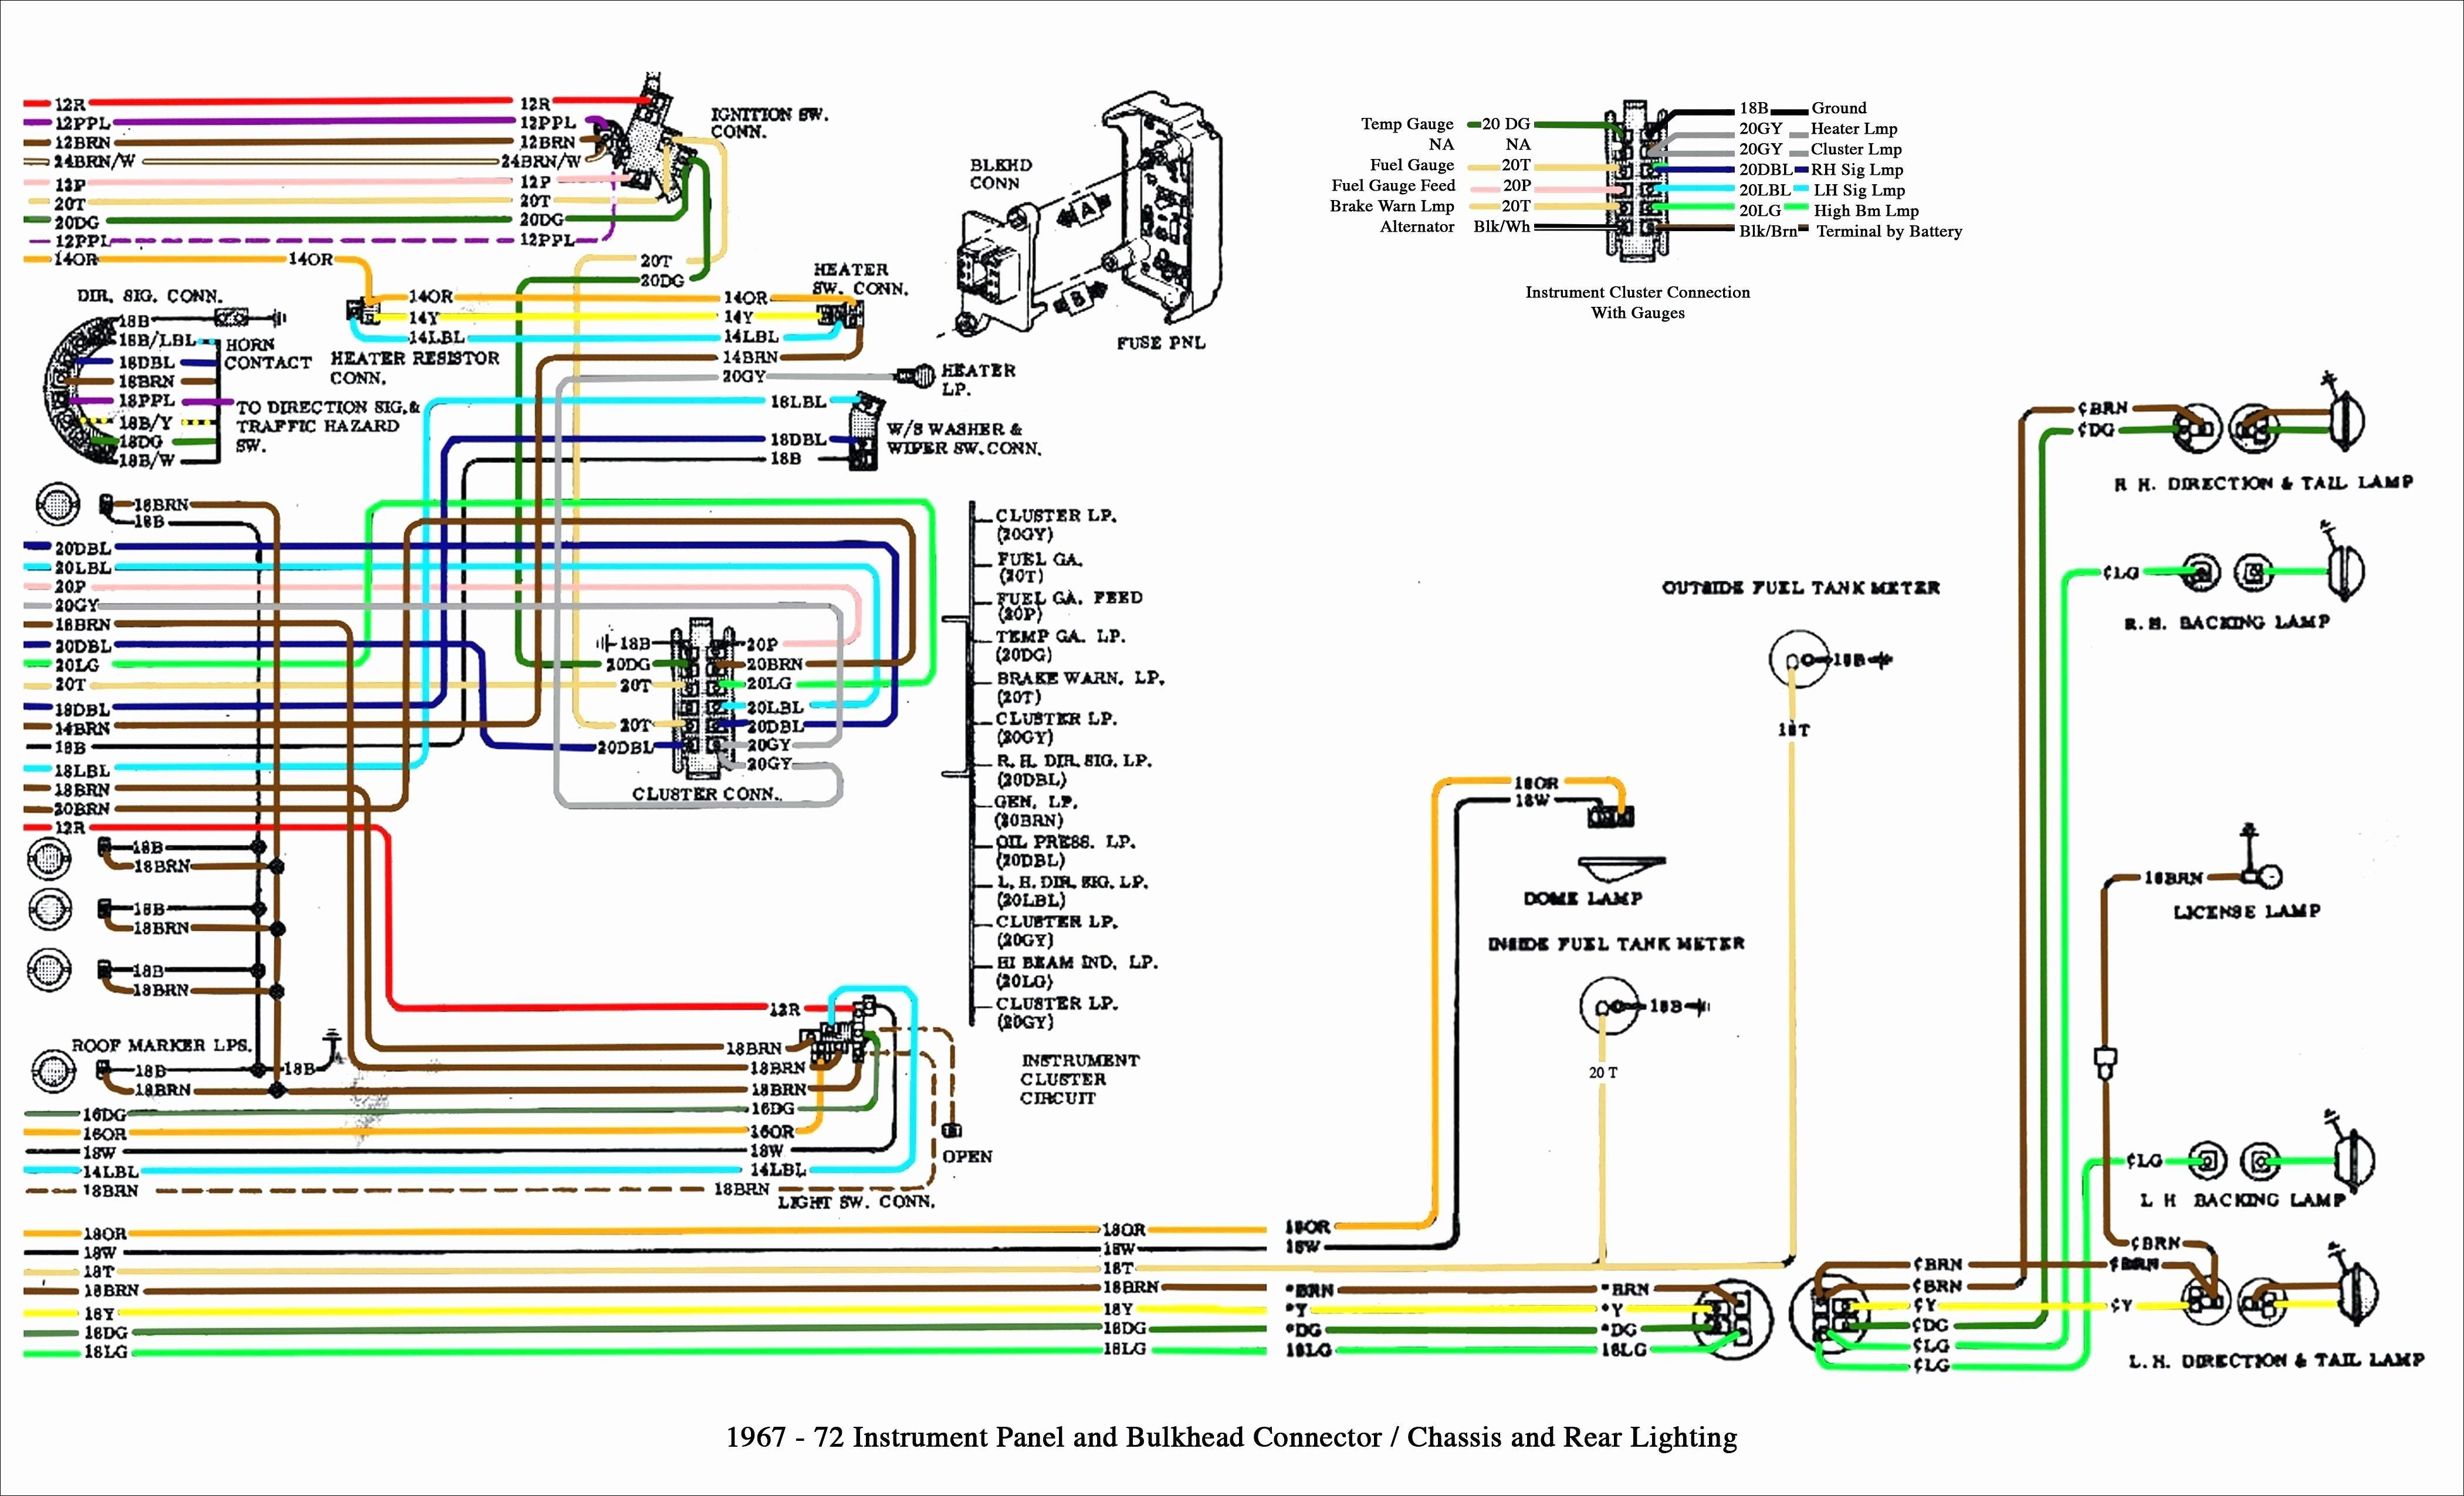 Wiring Diagram For 2005 Chevy Silverado 3500 - seniorsclub.it  visualdraw-field - visualdraw-field.seniorsclub.itdiagram database